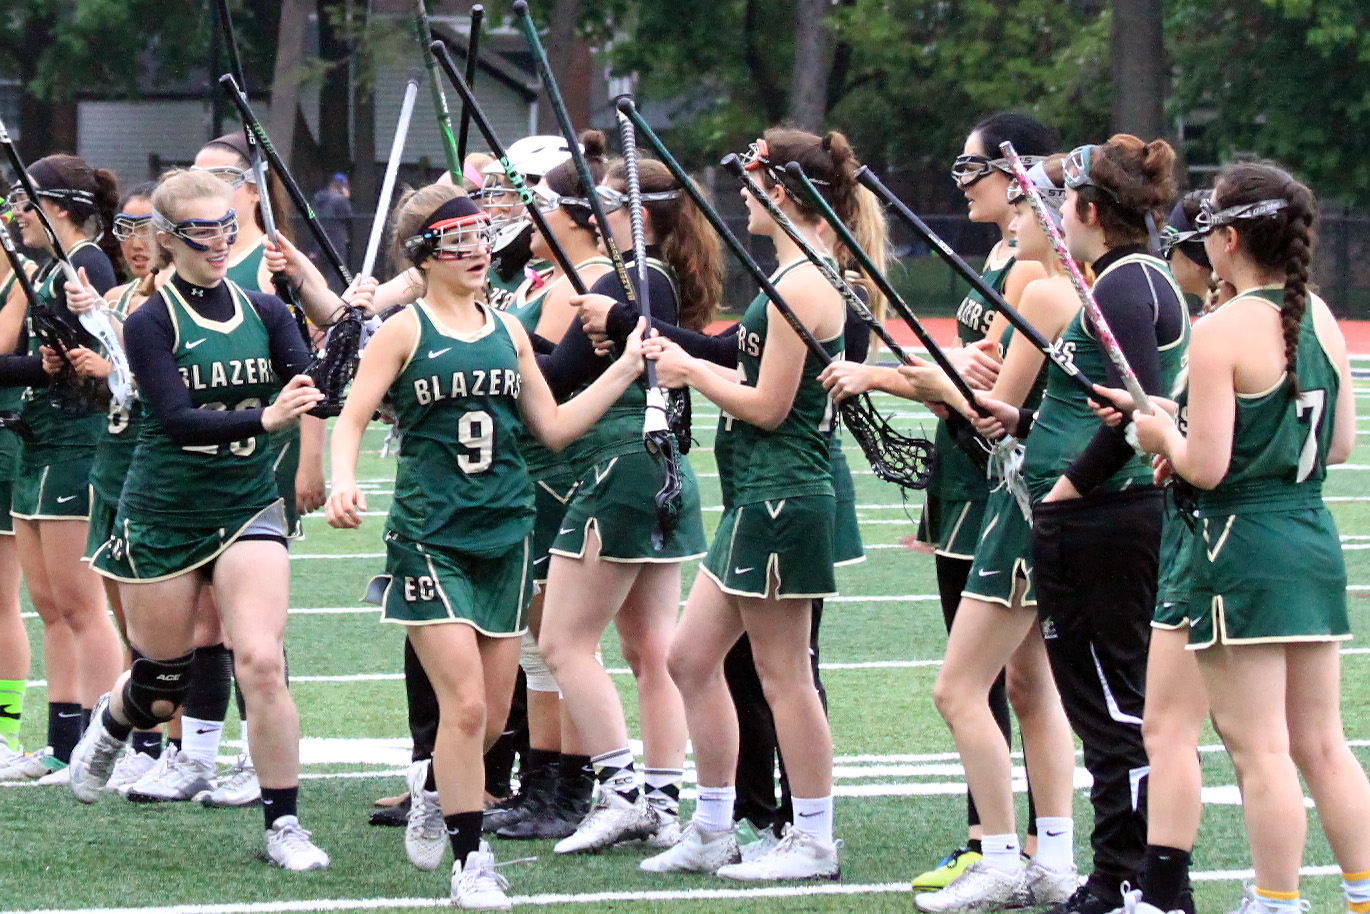 IWLCA Academic Honors Roll In For Blazer Lacrosse